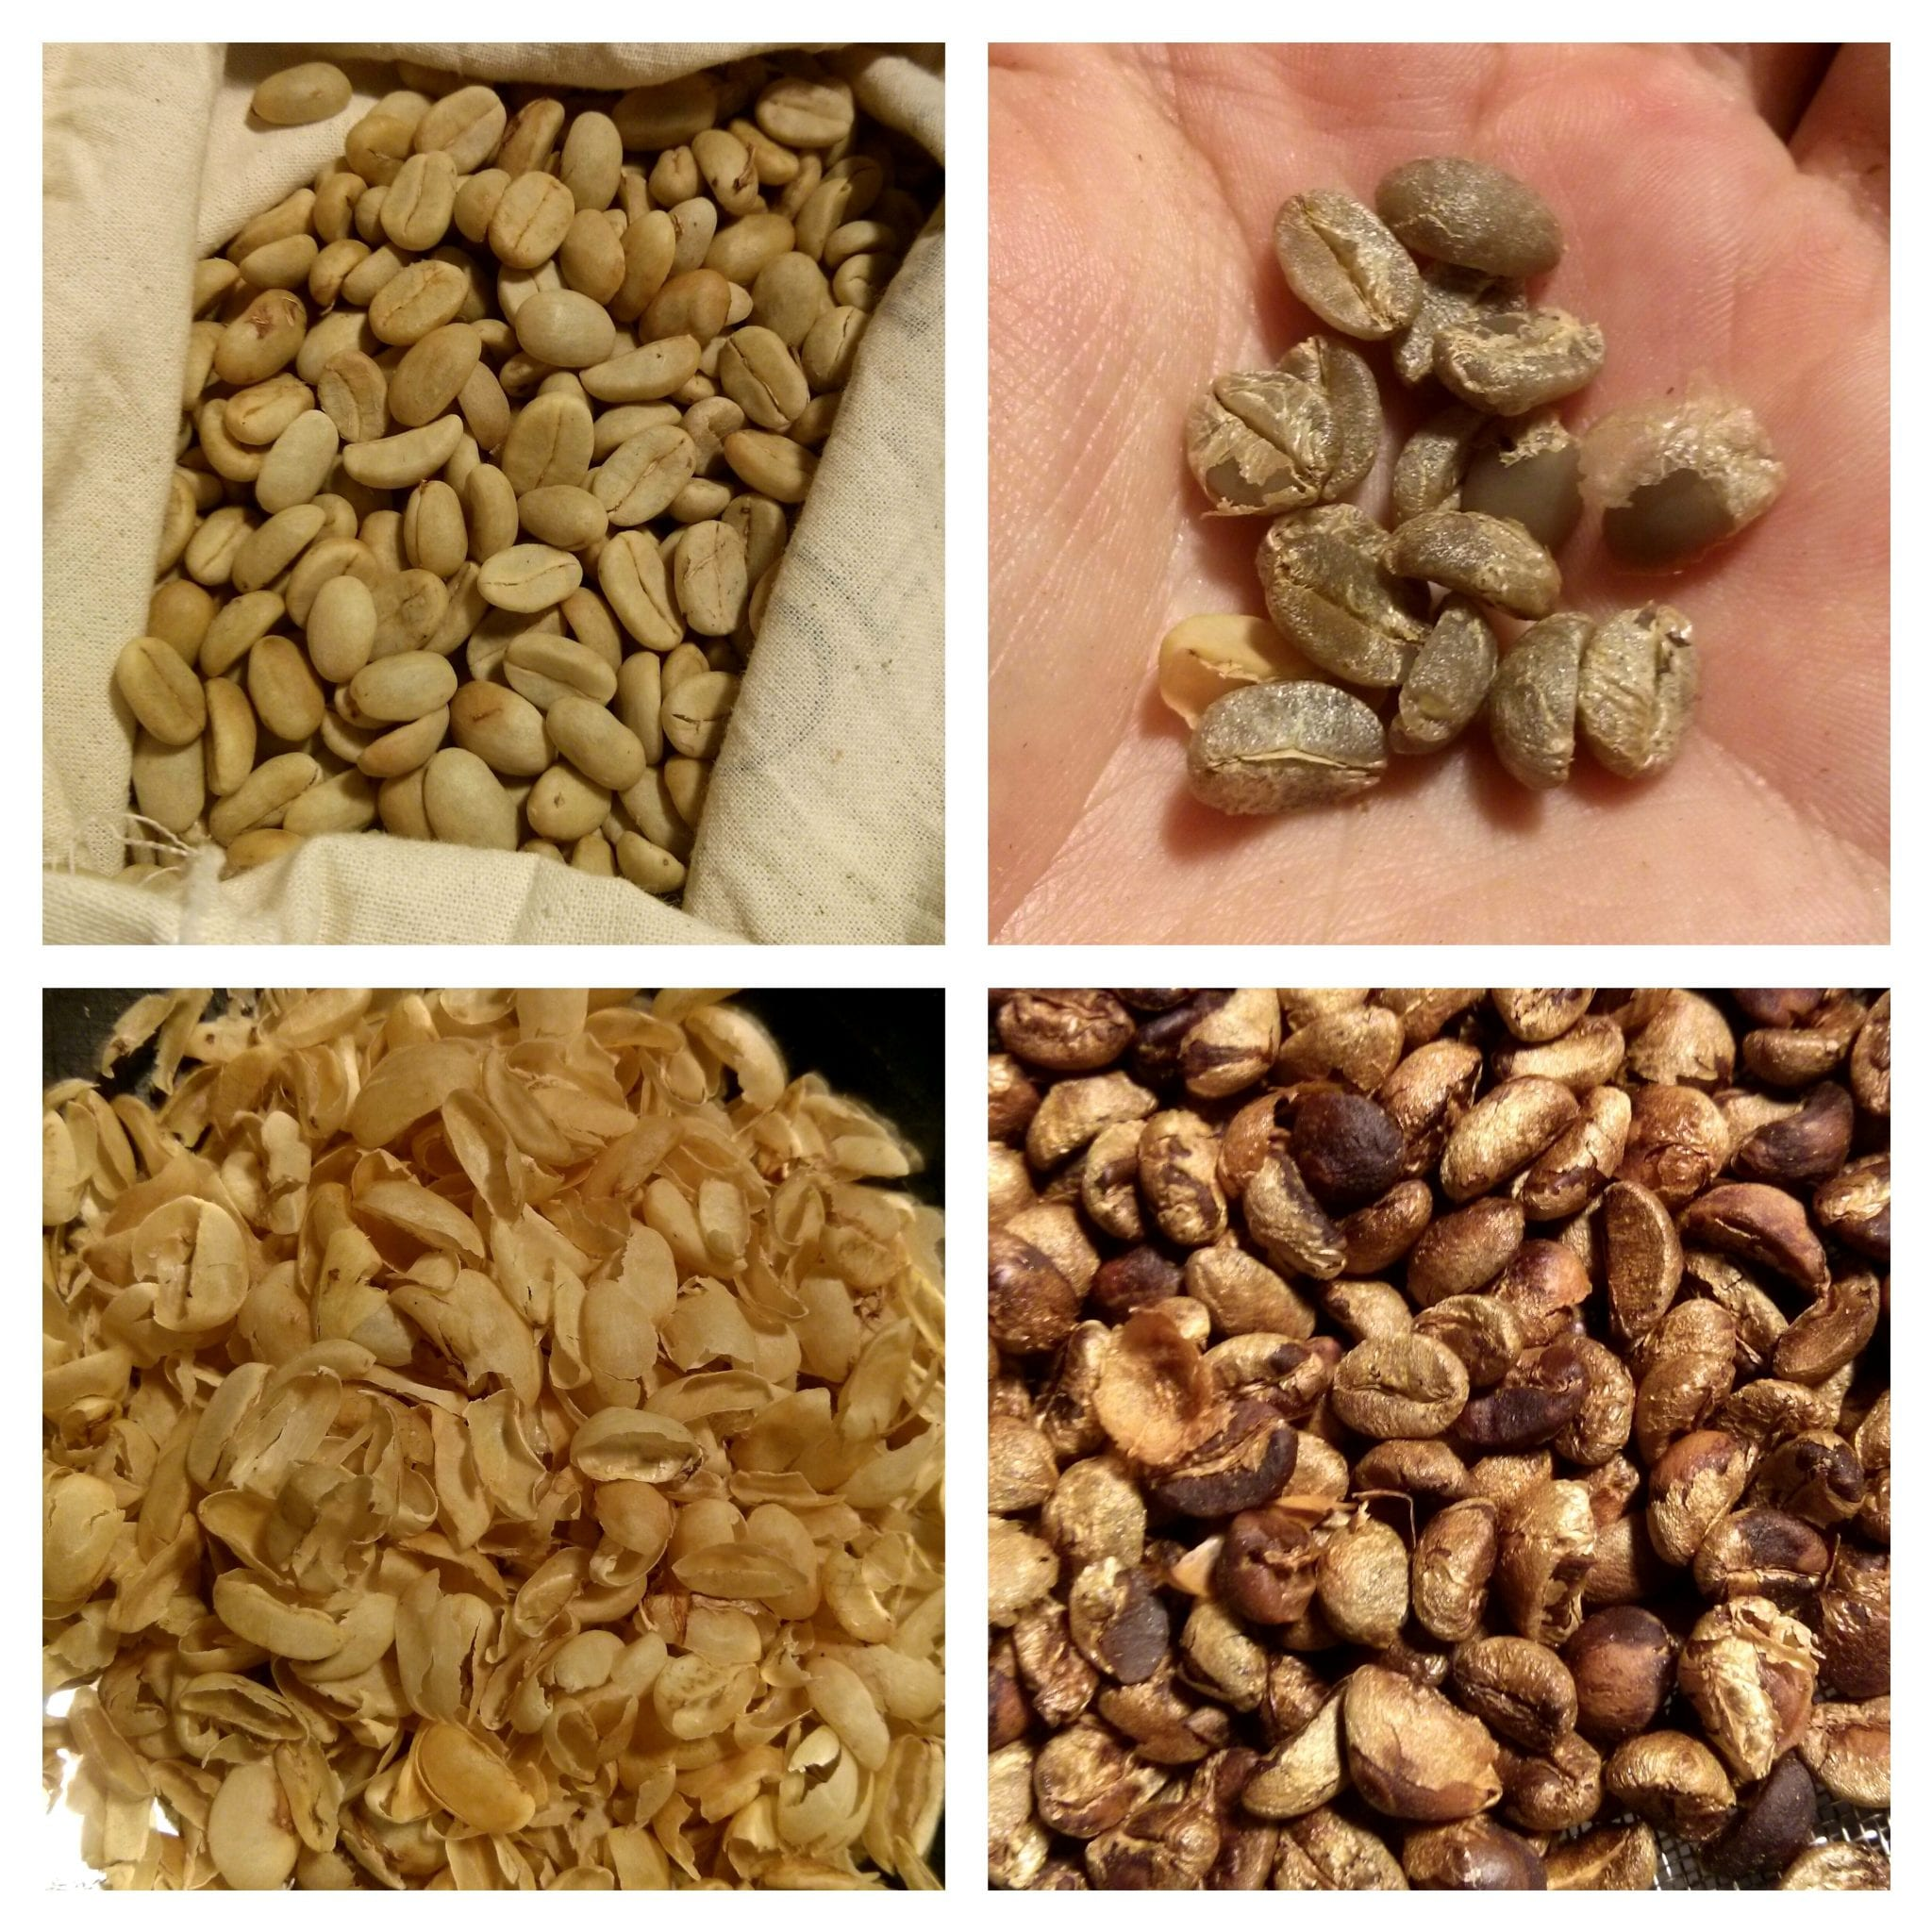 the progression of the beans from the dried parchment stage to the roasting stage. I